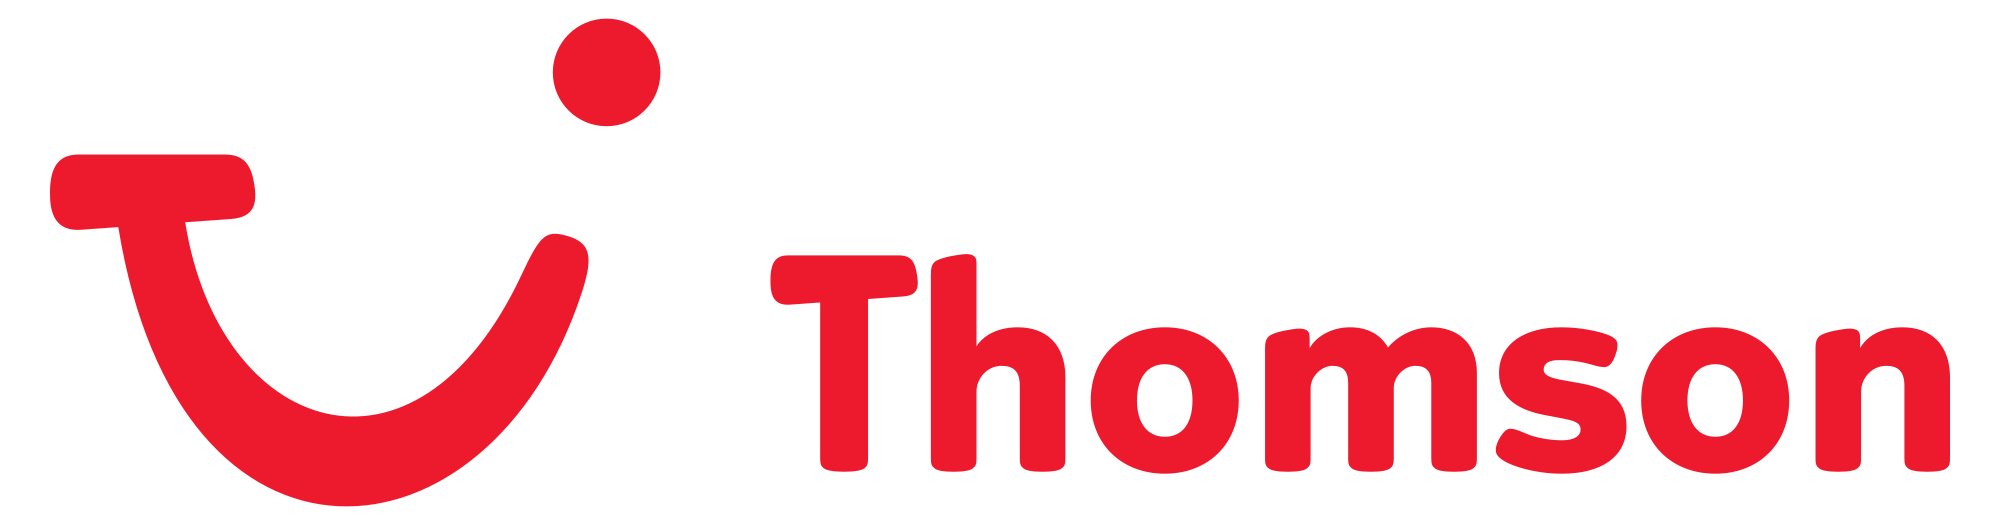 thomson holiday customer service Having recently had a holiday with thomsons we are shocked with the poor customer service they provide after looking online it seems they are renowne.